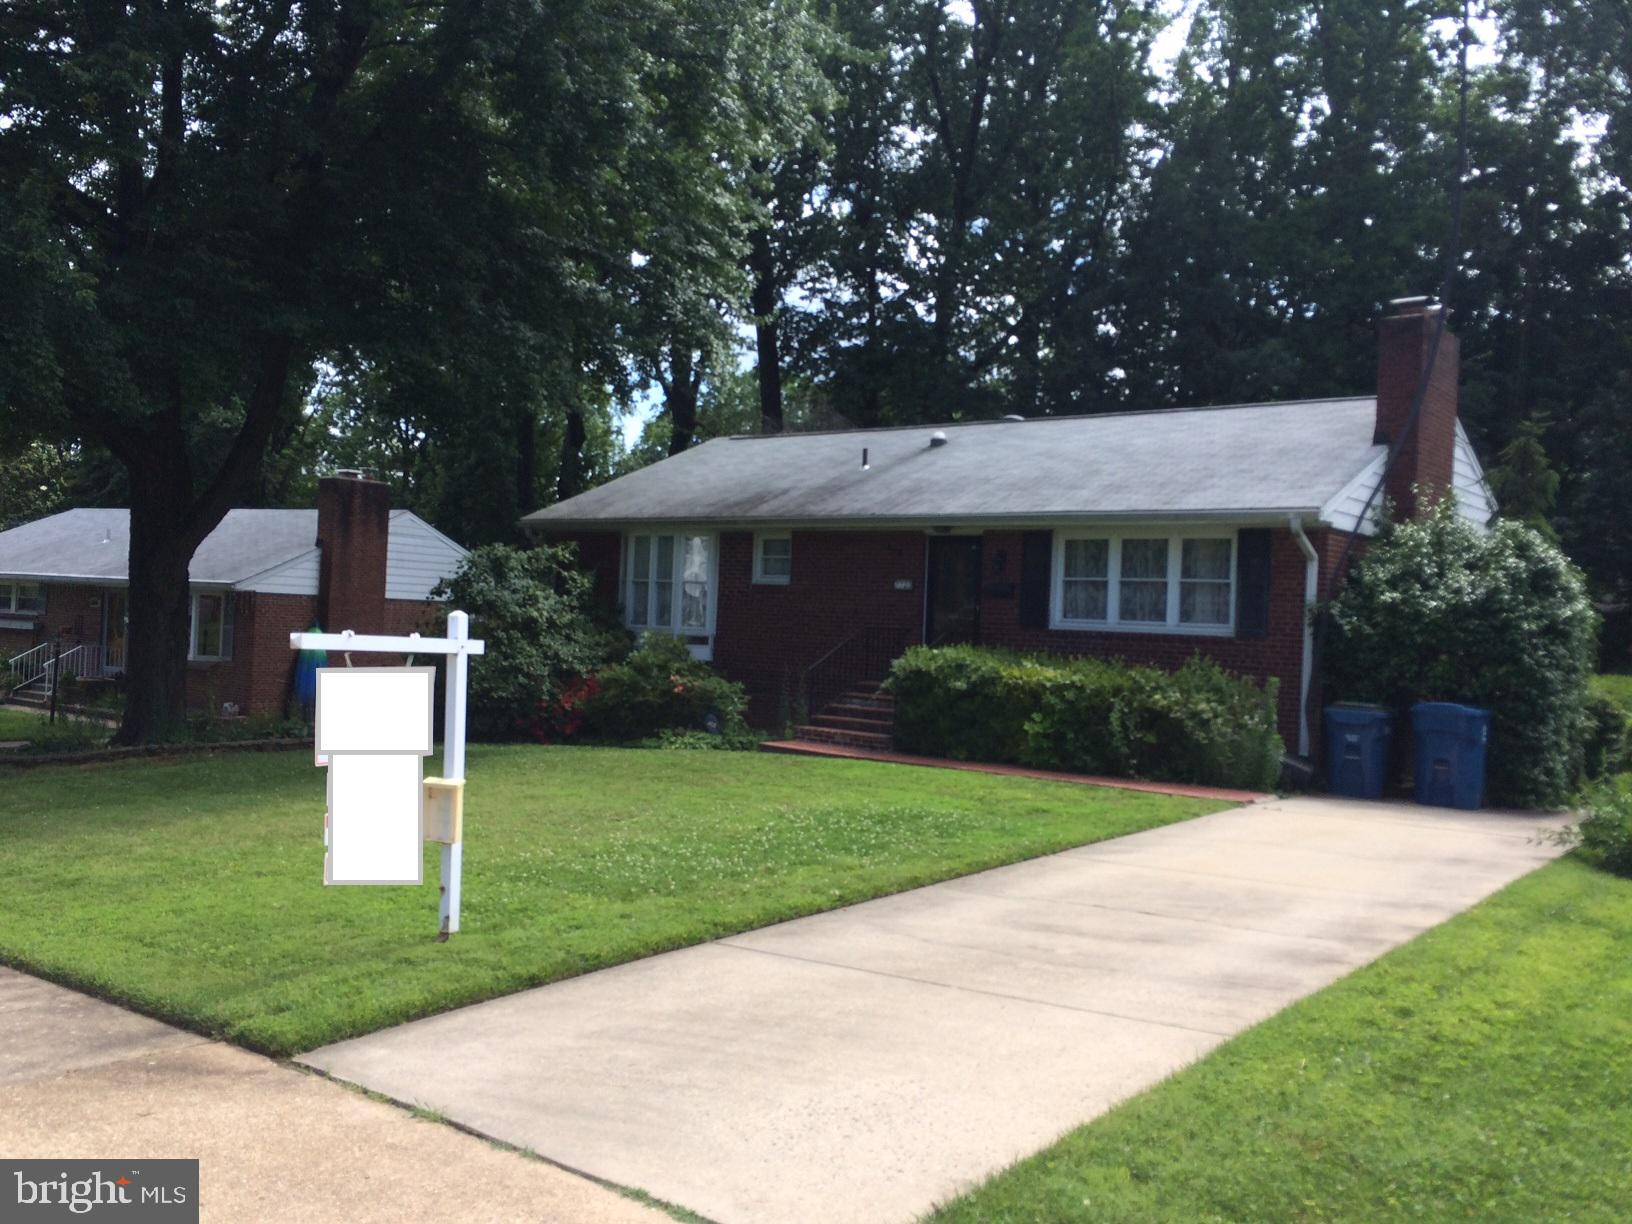 Investor opportunity or commuter owner dream. No interior showings till 7/1, but offers welcome now. Hardwood and ceramic tile floors throughout. Expanded brick raised rambler on 0.28 acre lot in commuter dream location just inside Beltway at Braddock. Beautiful mature landscaping all around the lot. Sunroom addition on the back adds space and light!  Tenant out 7/1. Renovation done 7/9. Update and enjoy or built a massive home here in this delightful quiet neighborhood.